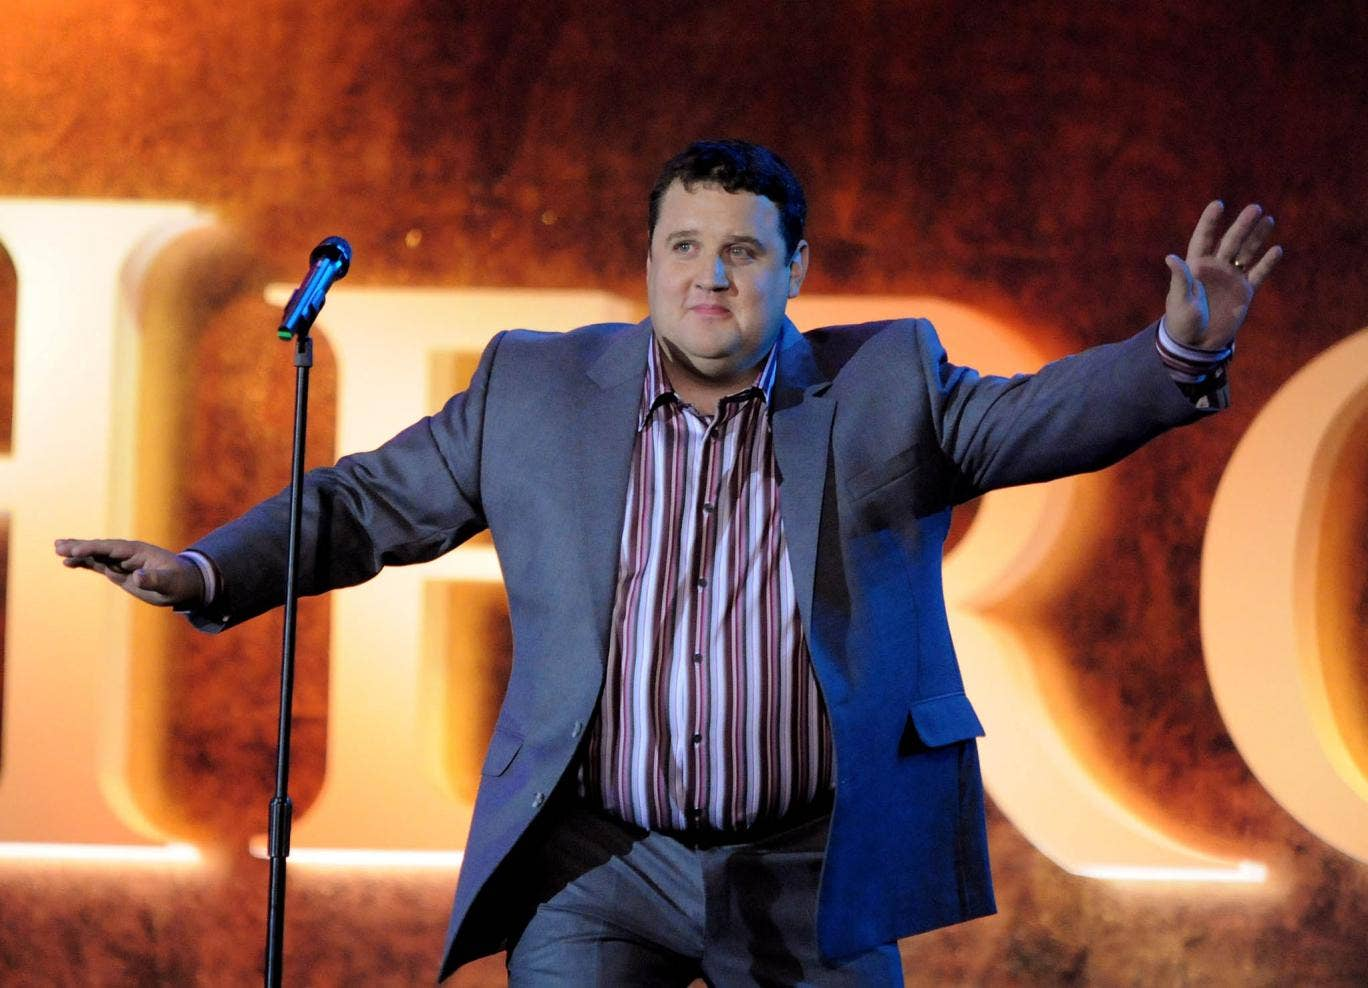 Comedian Peter Kay is to star in a new BBC One comedy Car Share